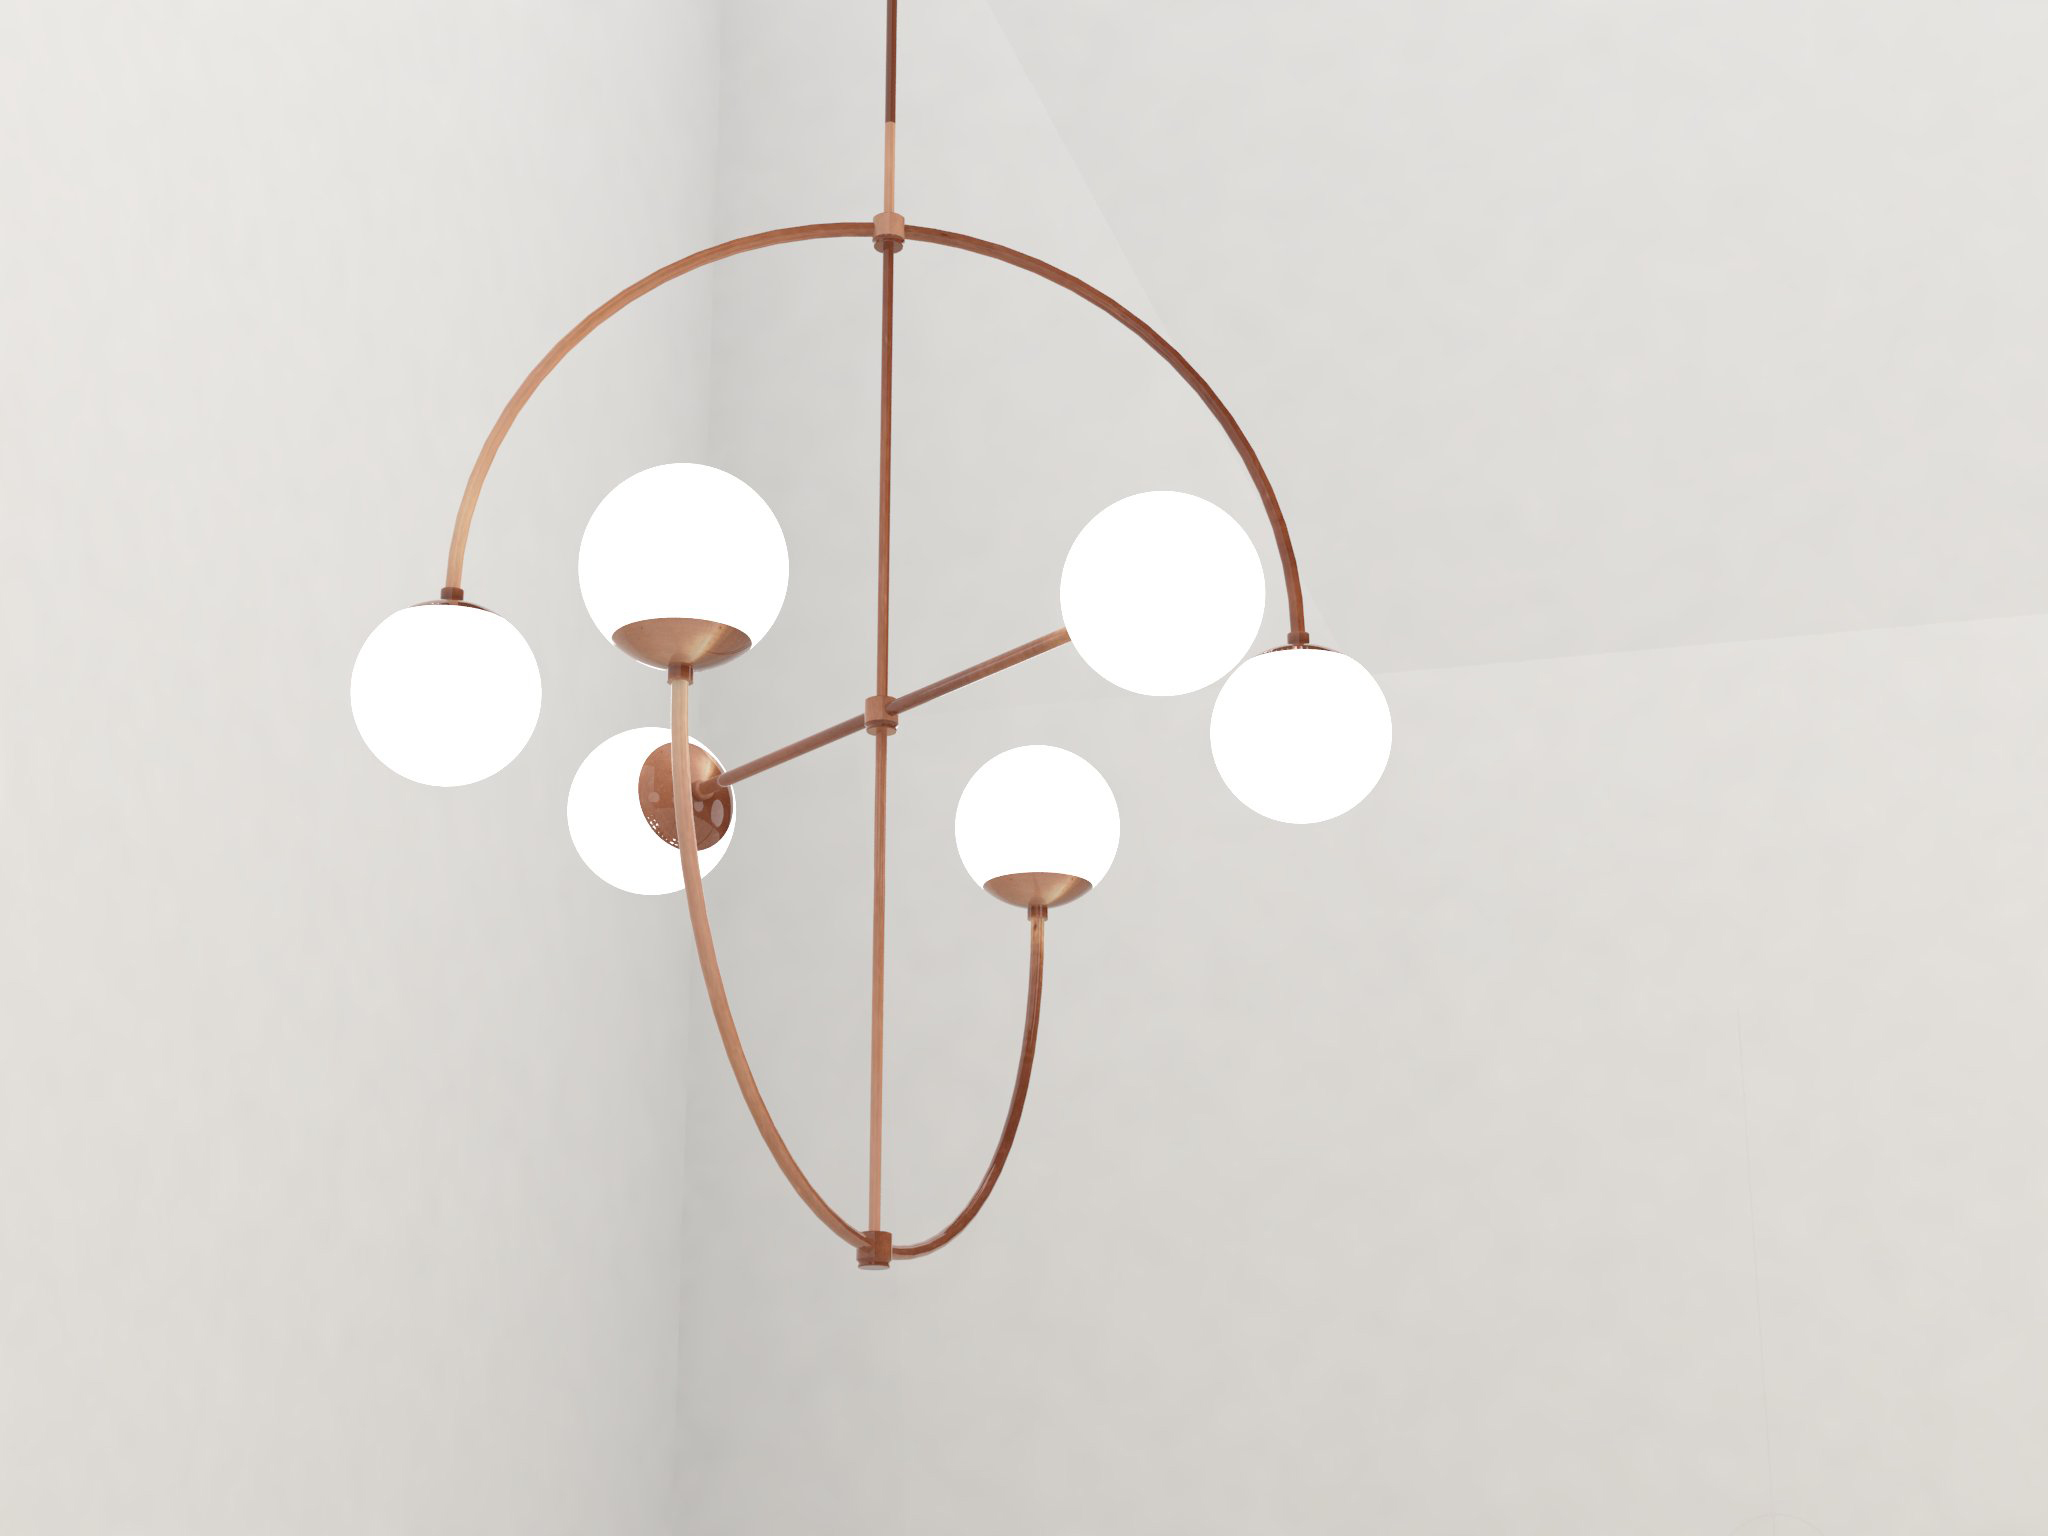 While at Bower I had the opportunity to collaborate on this custom chandelier based off of the existing C Light design